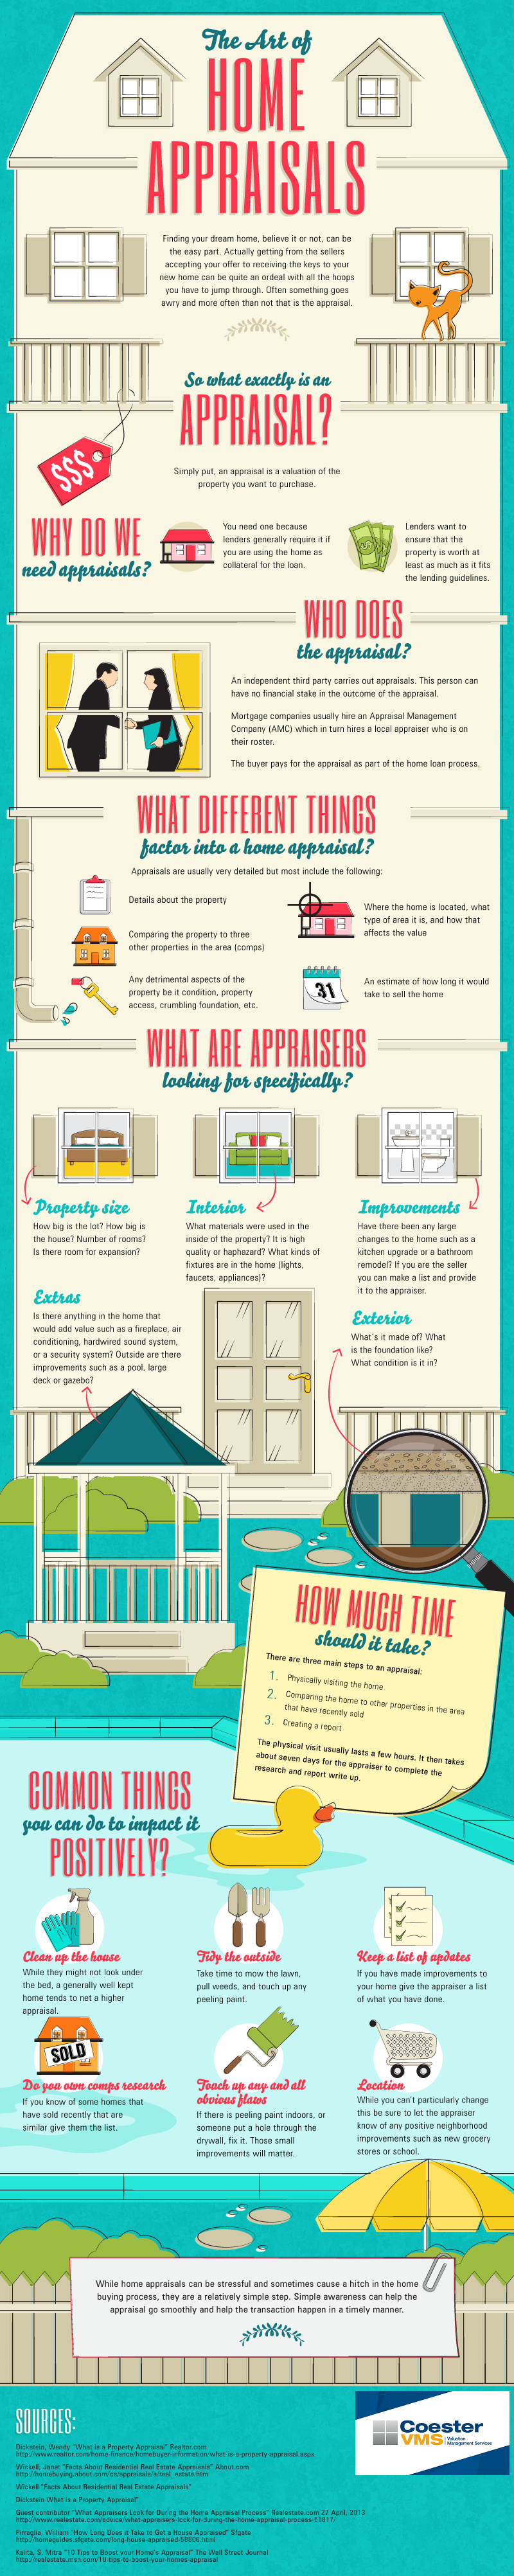 CoesterVMS- The Art of Home Appraisals